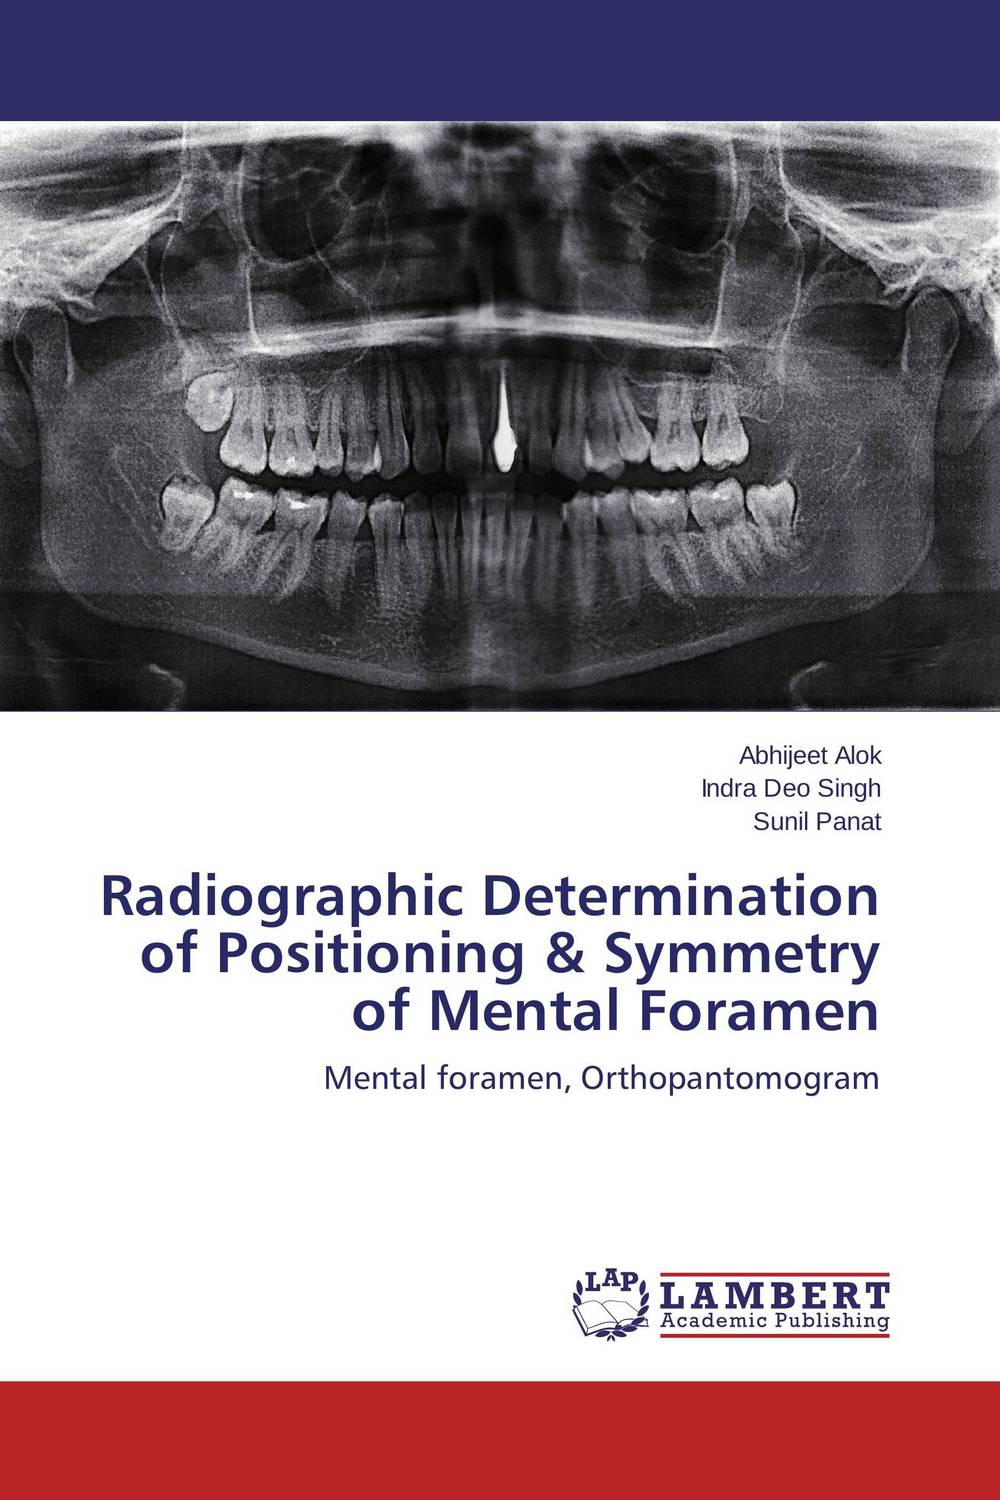 Radiographic Determination of Positioning & Symmetry of Mental Foramen common mental disorders in long term sickness absence